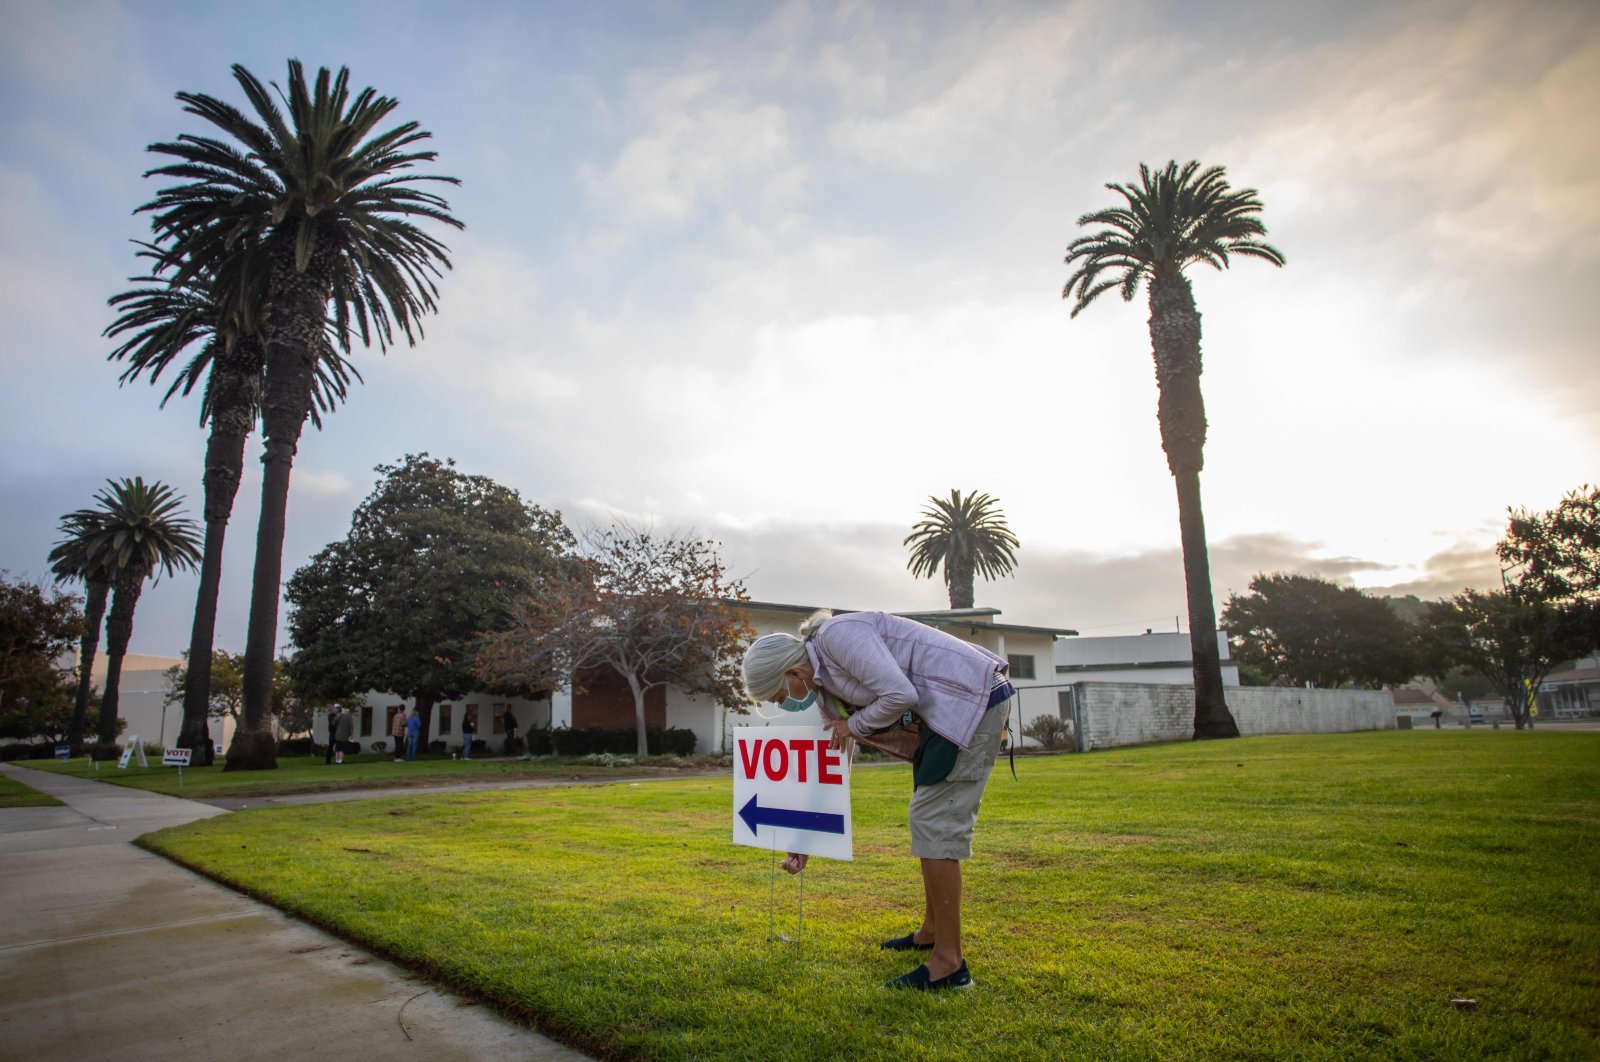 Lorraine Crawford puts vote signs as the sin rises the Main Street Branch Library vote center on November 3, 2020 in Huntington Beach, California. (AFP Photo)